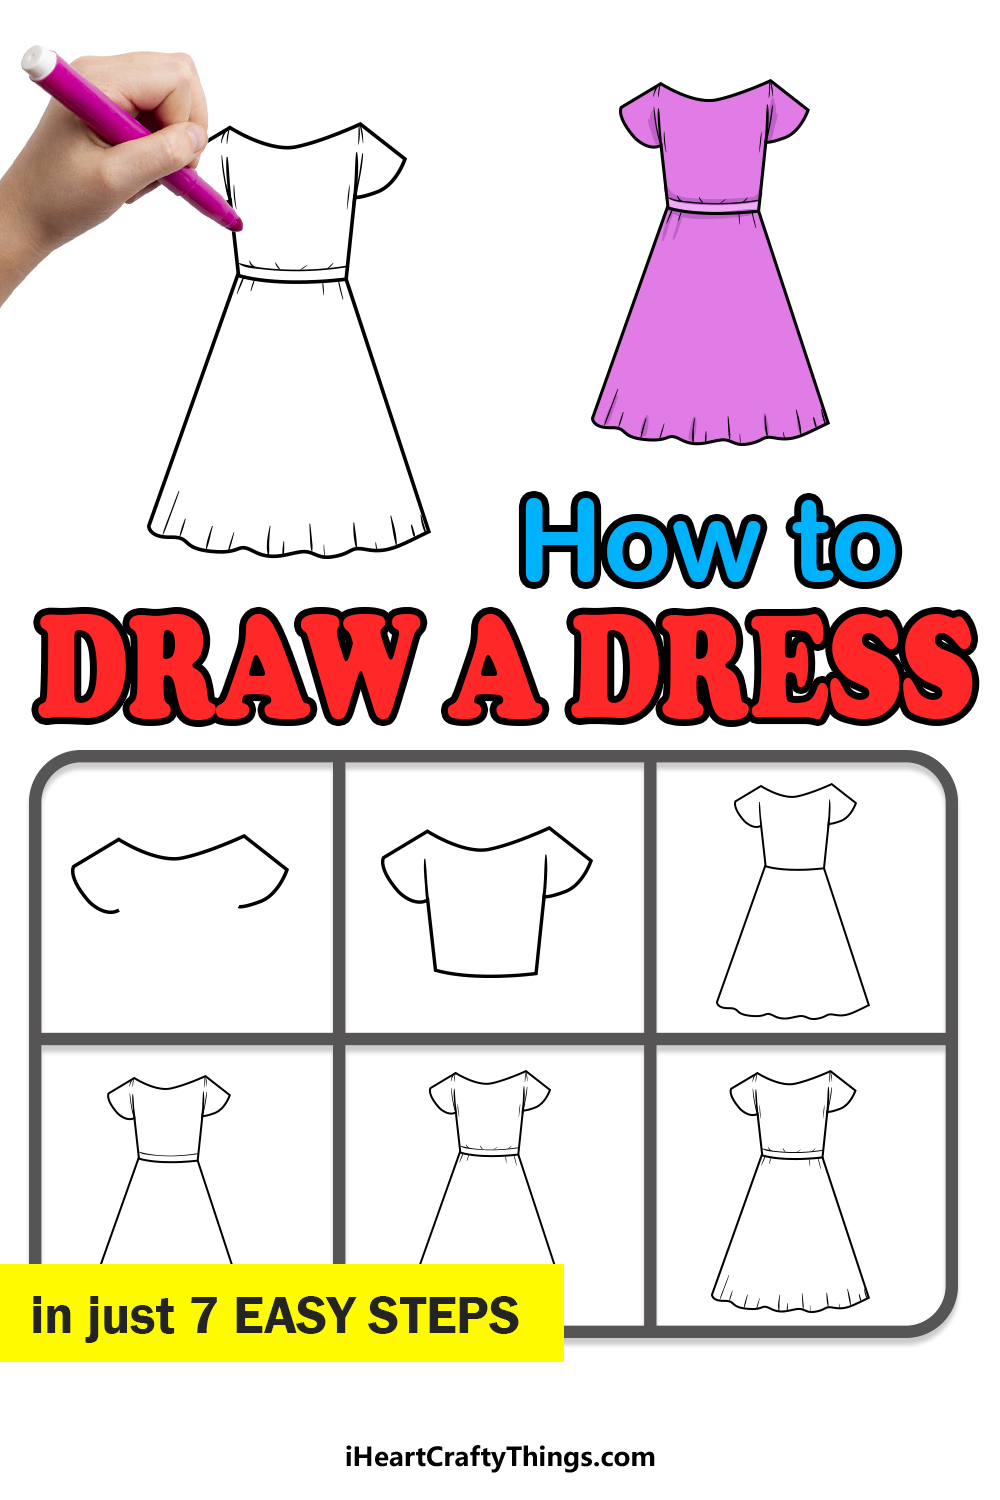 how to draw a dress in 7 easy steps